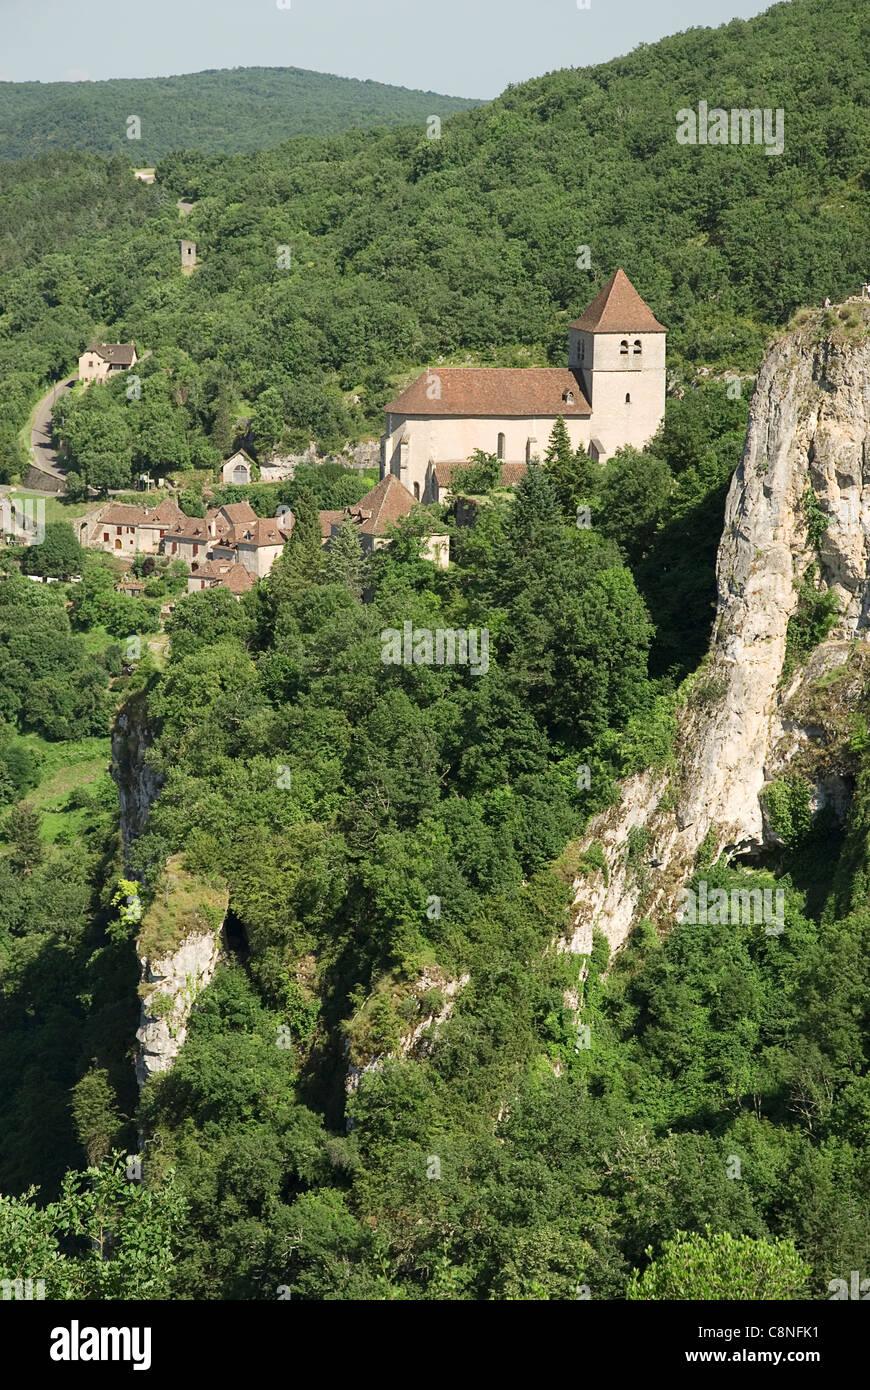 France, Lot, St Cirq-Lapopie, village and church on tree-covered hillside - Stock Image